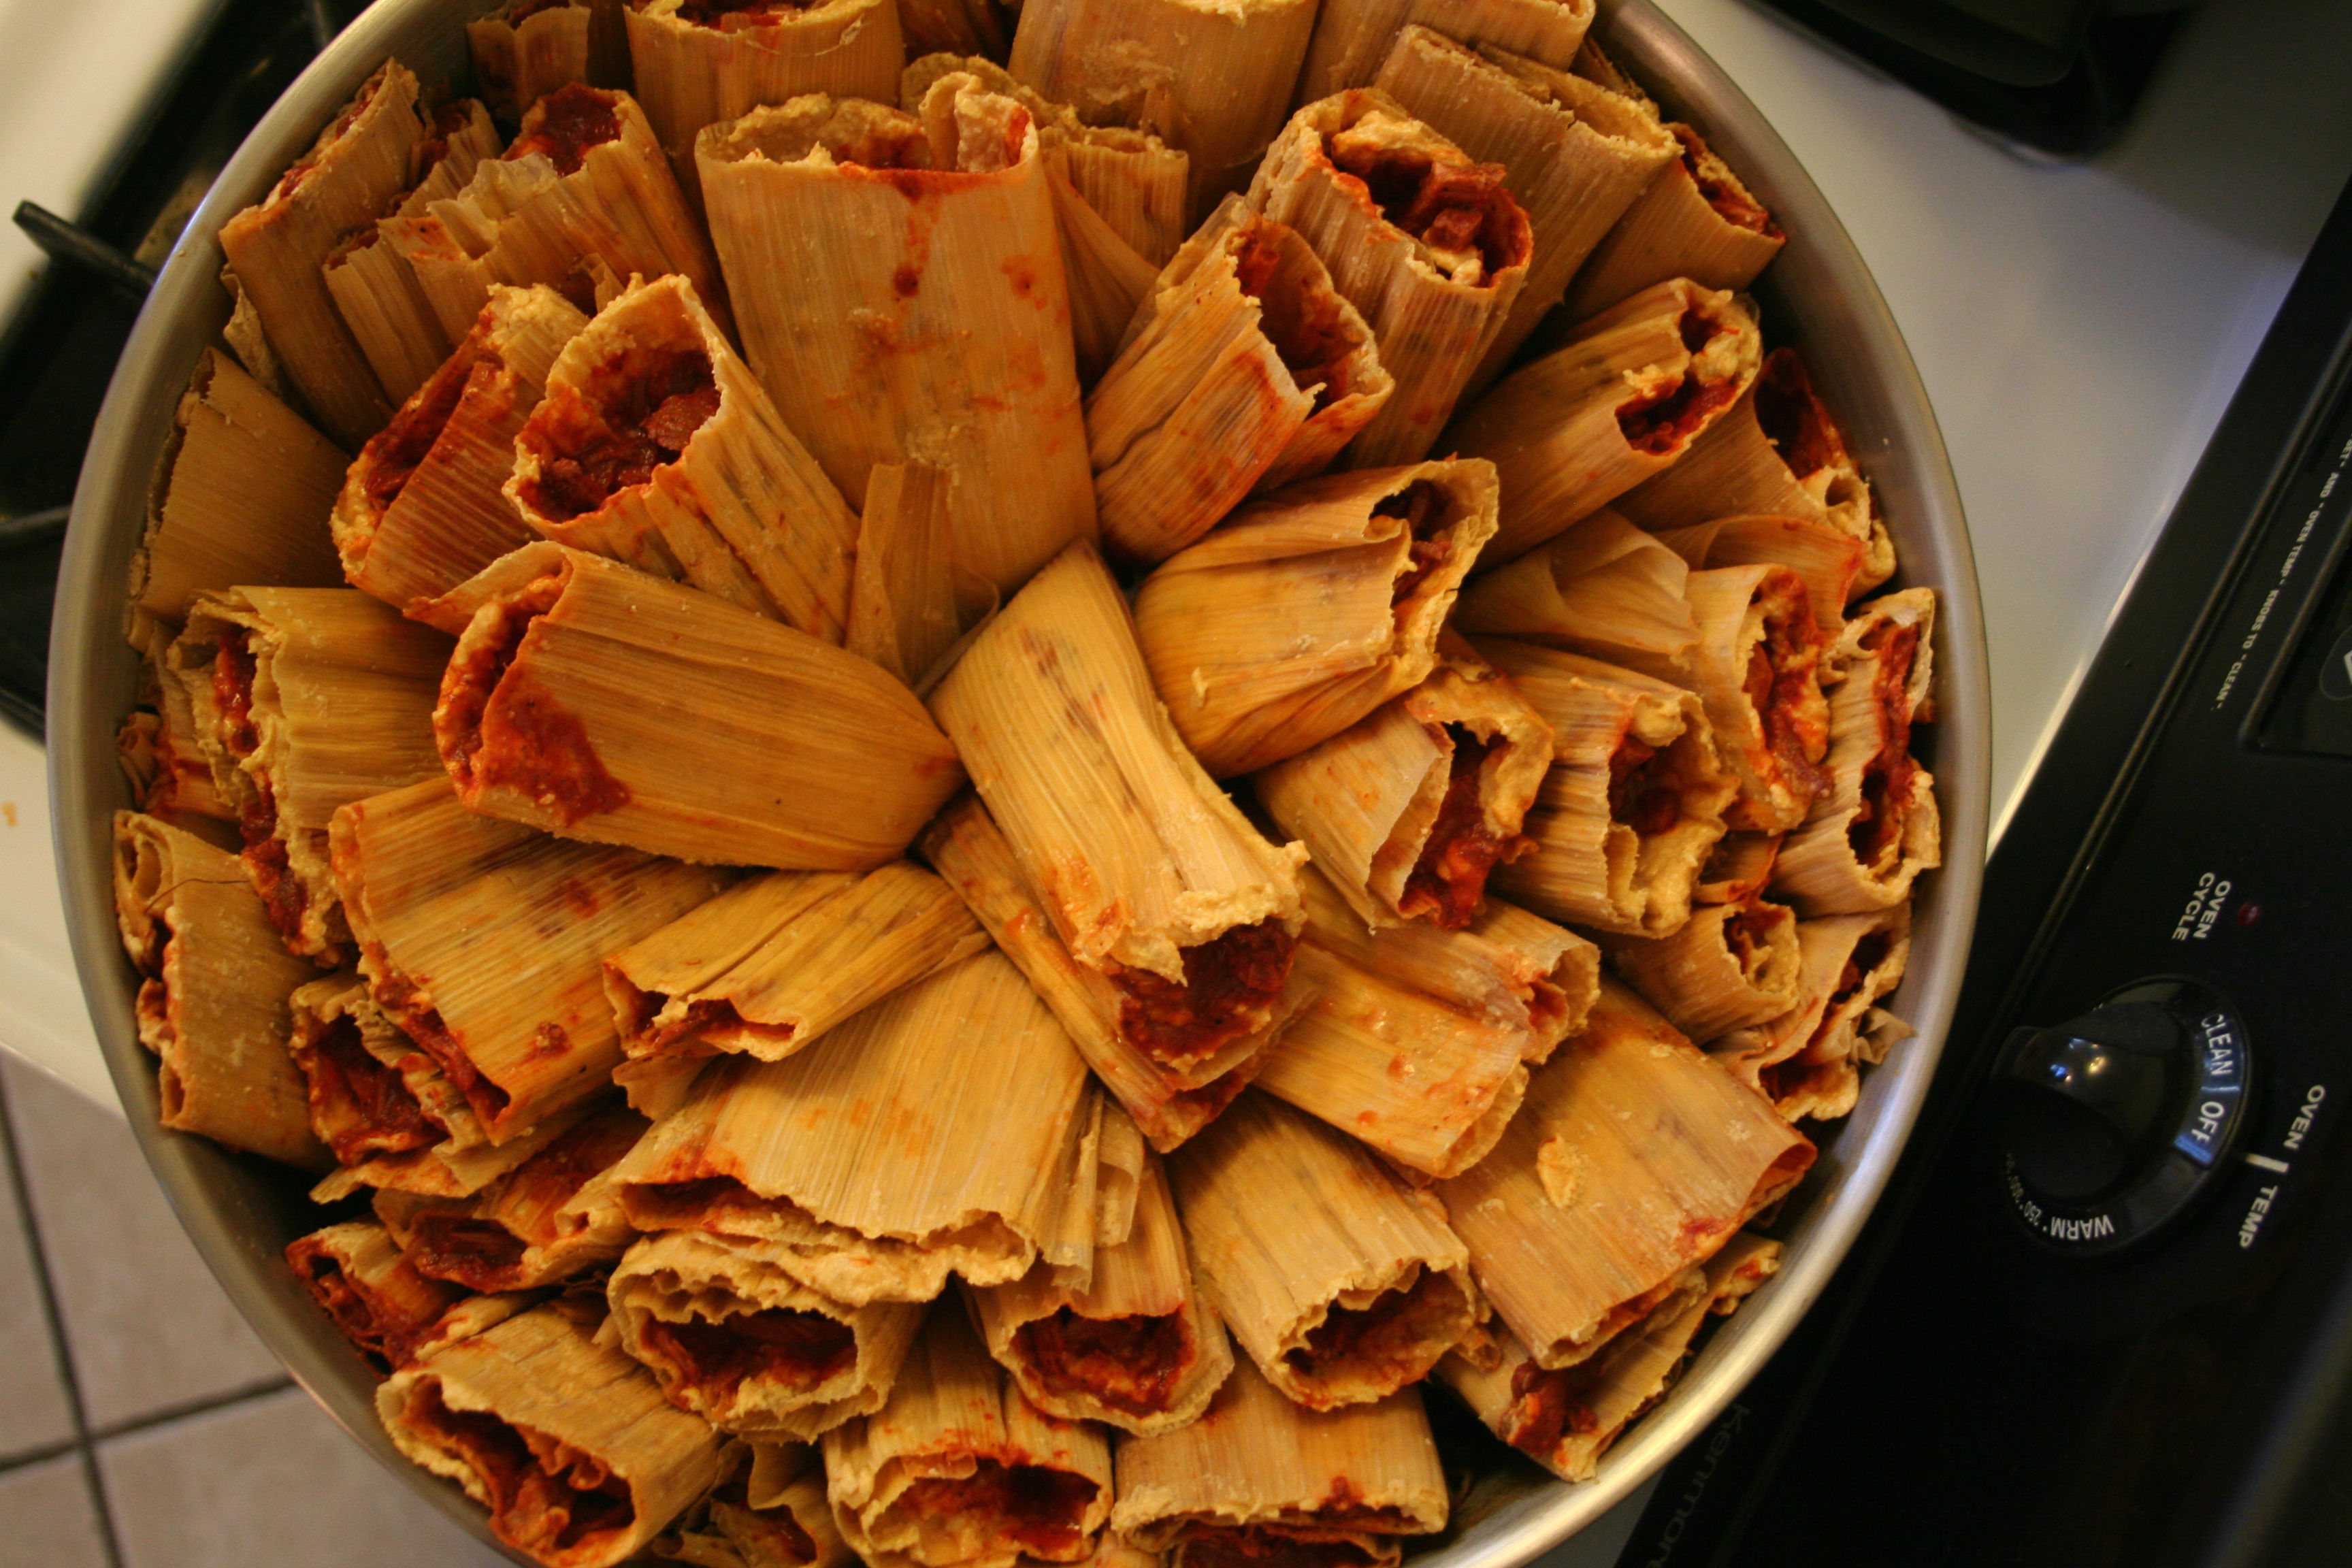 Tamales ready to steam